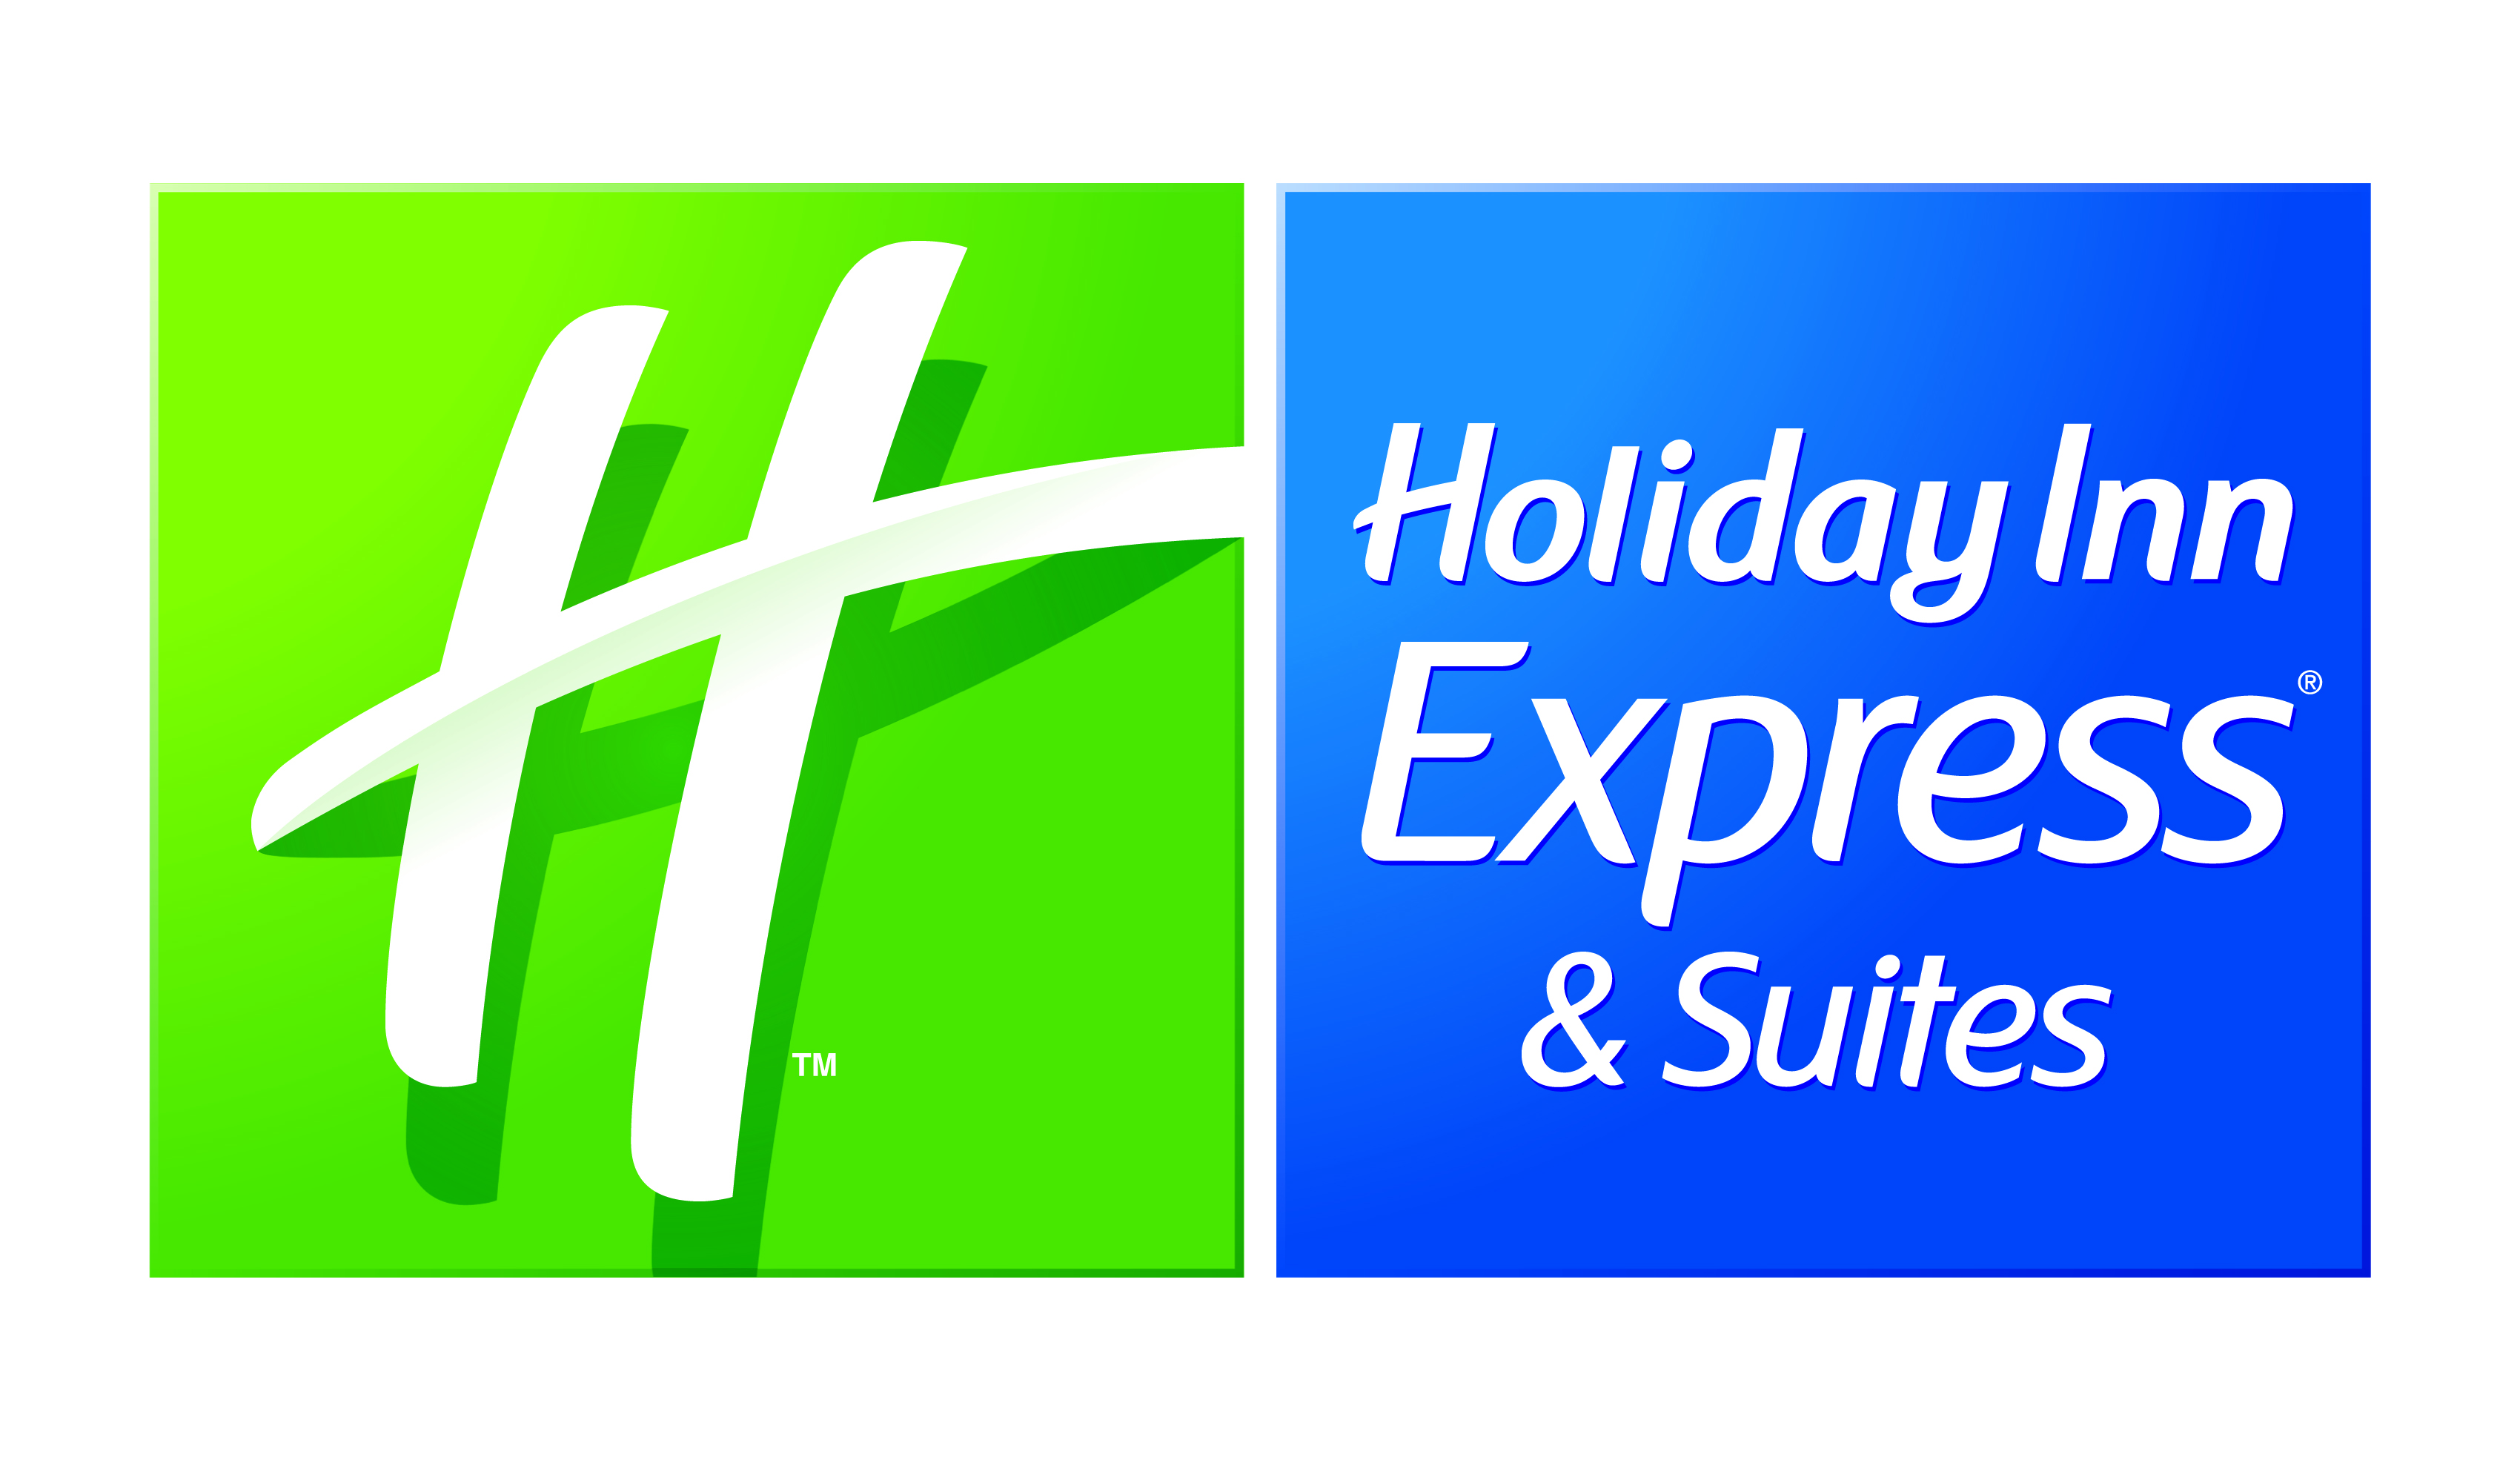 Holiday Inn Express & Suites Bowmanville company logo